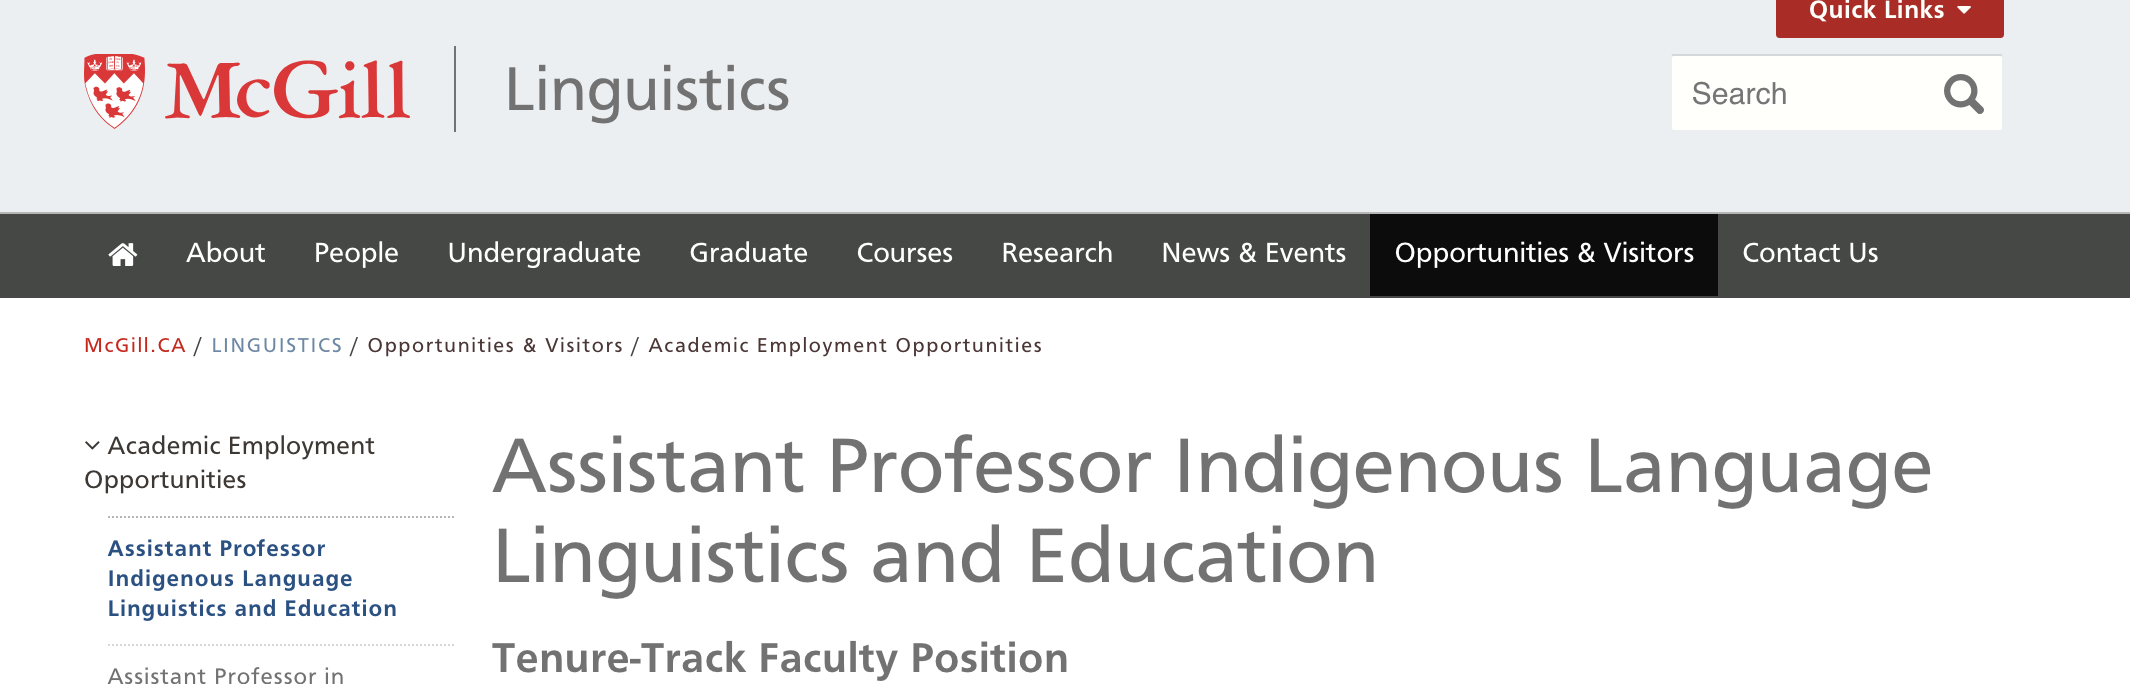 Assistant Professor Position In Indigenous Language Linguistics And